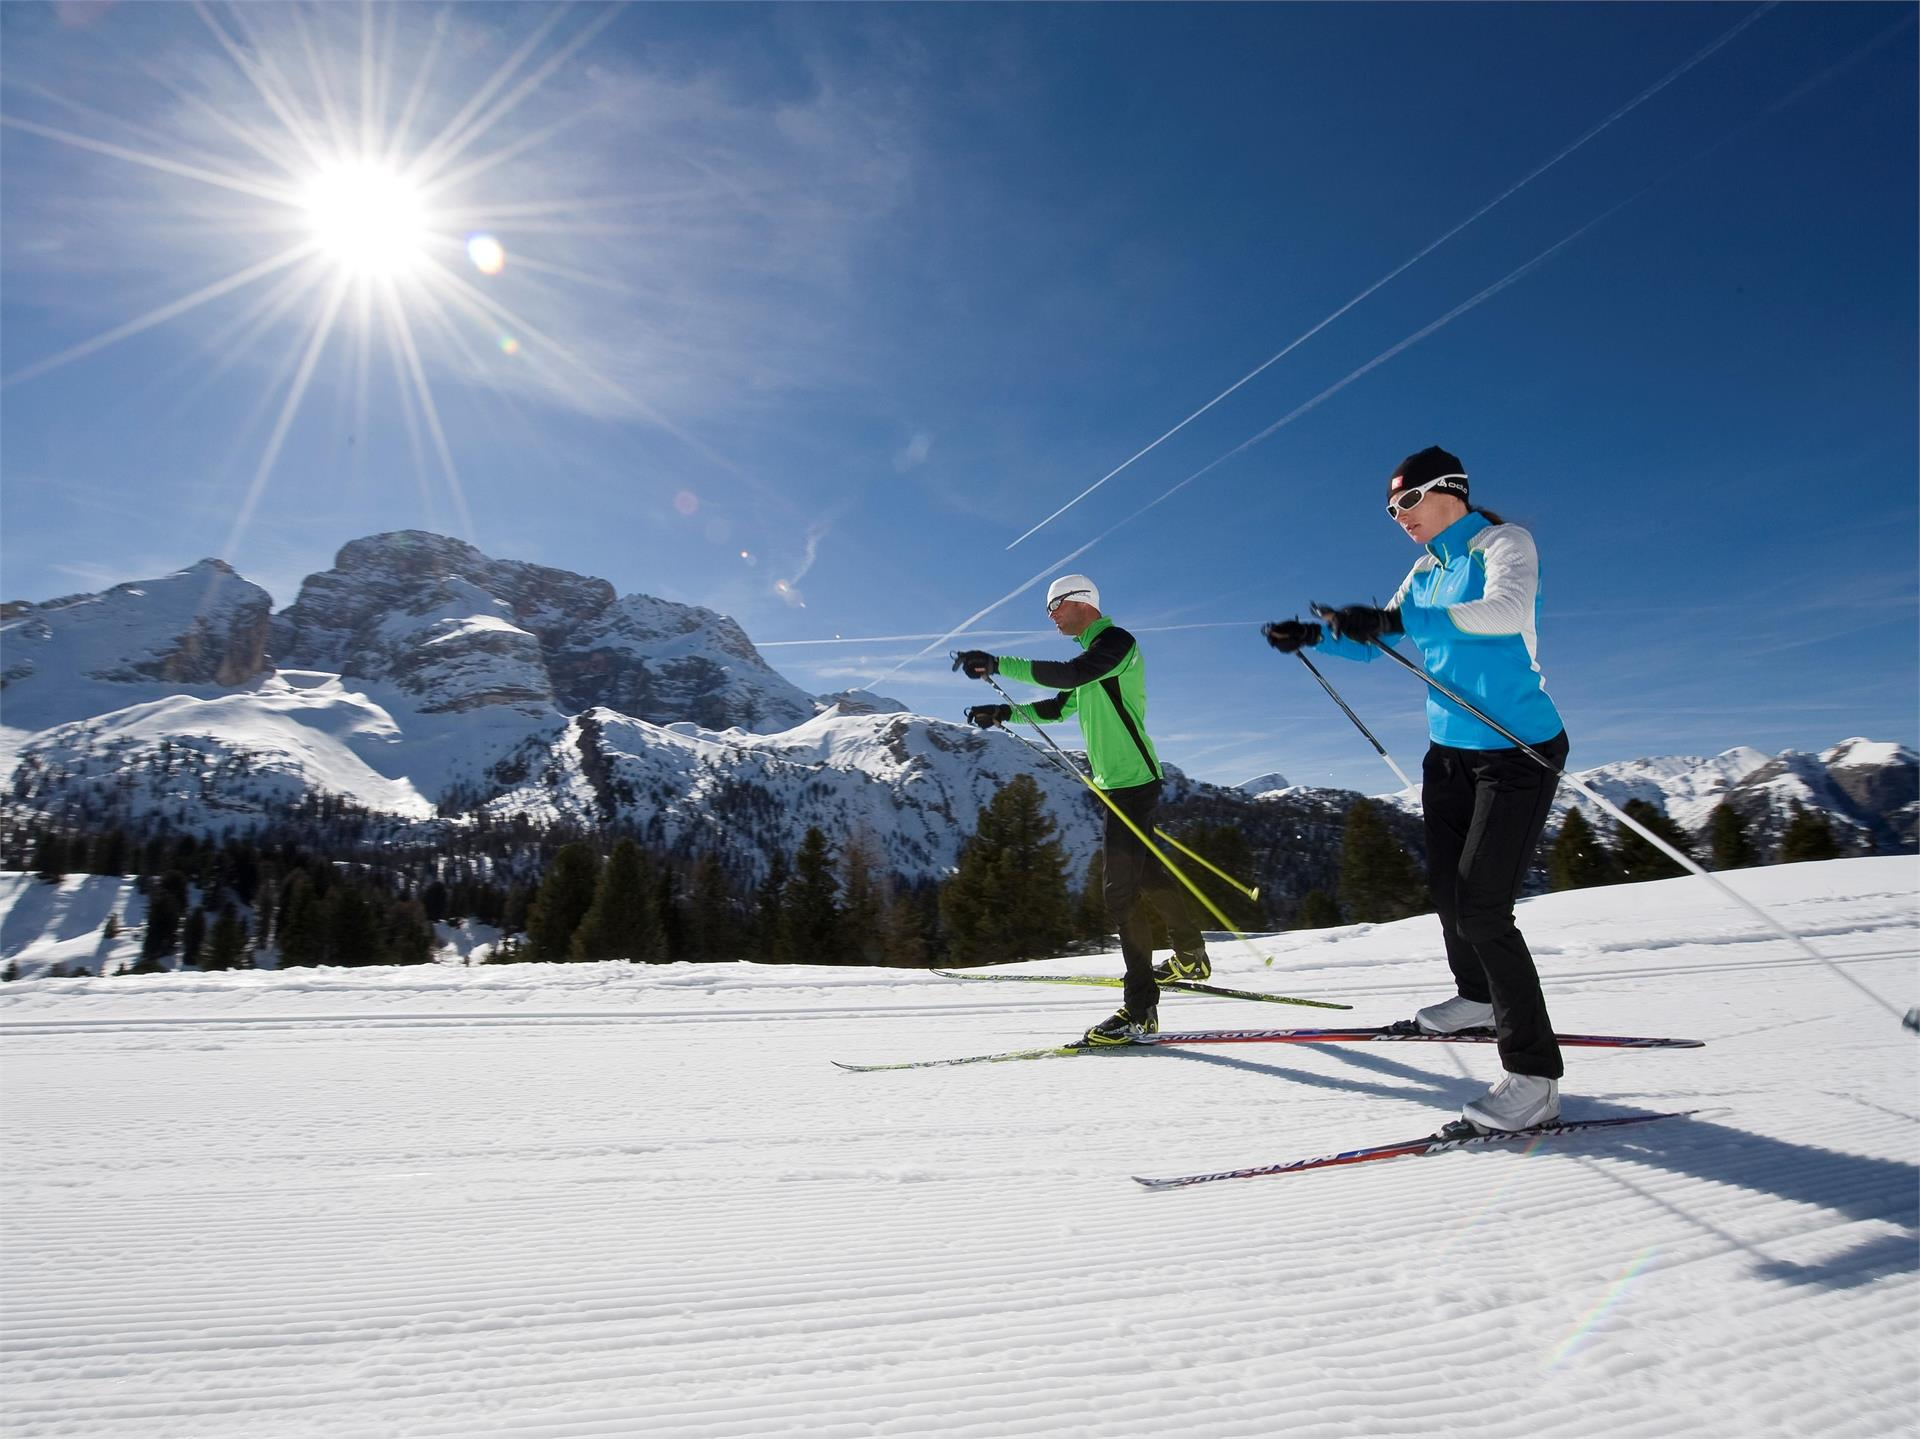 Cross-country-skiing at Braies